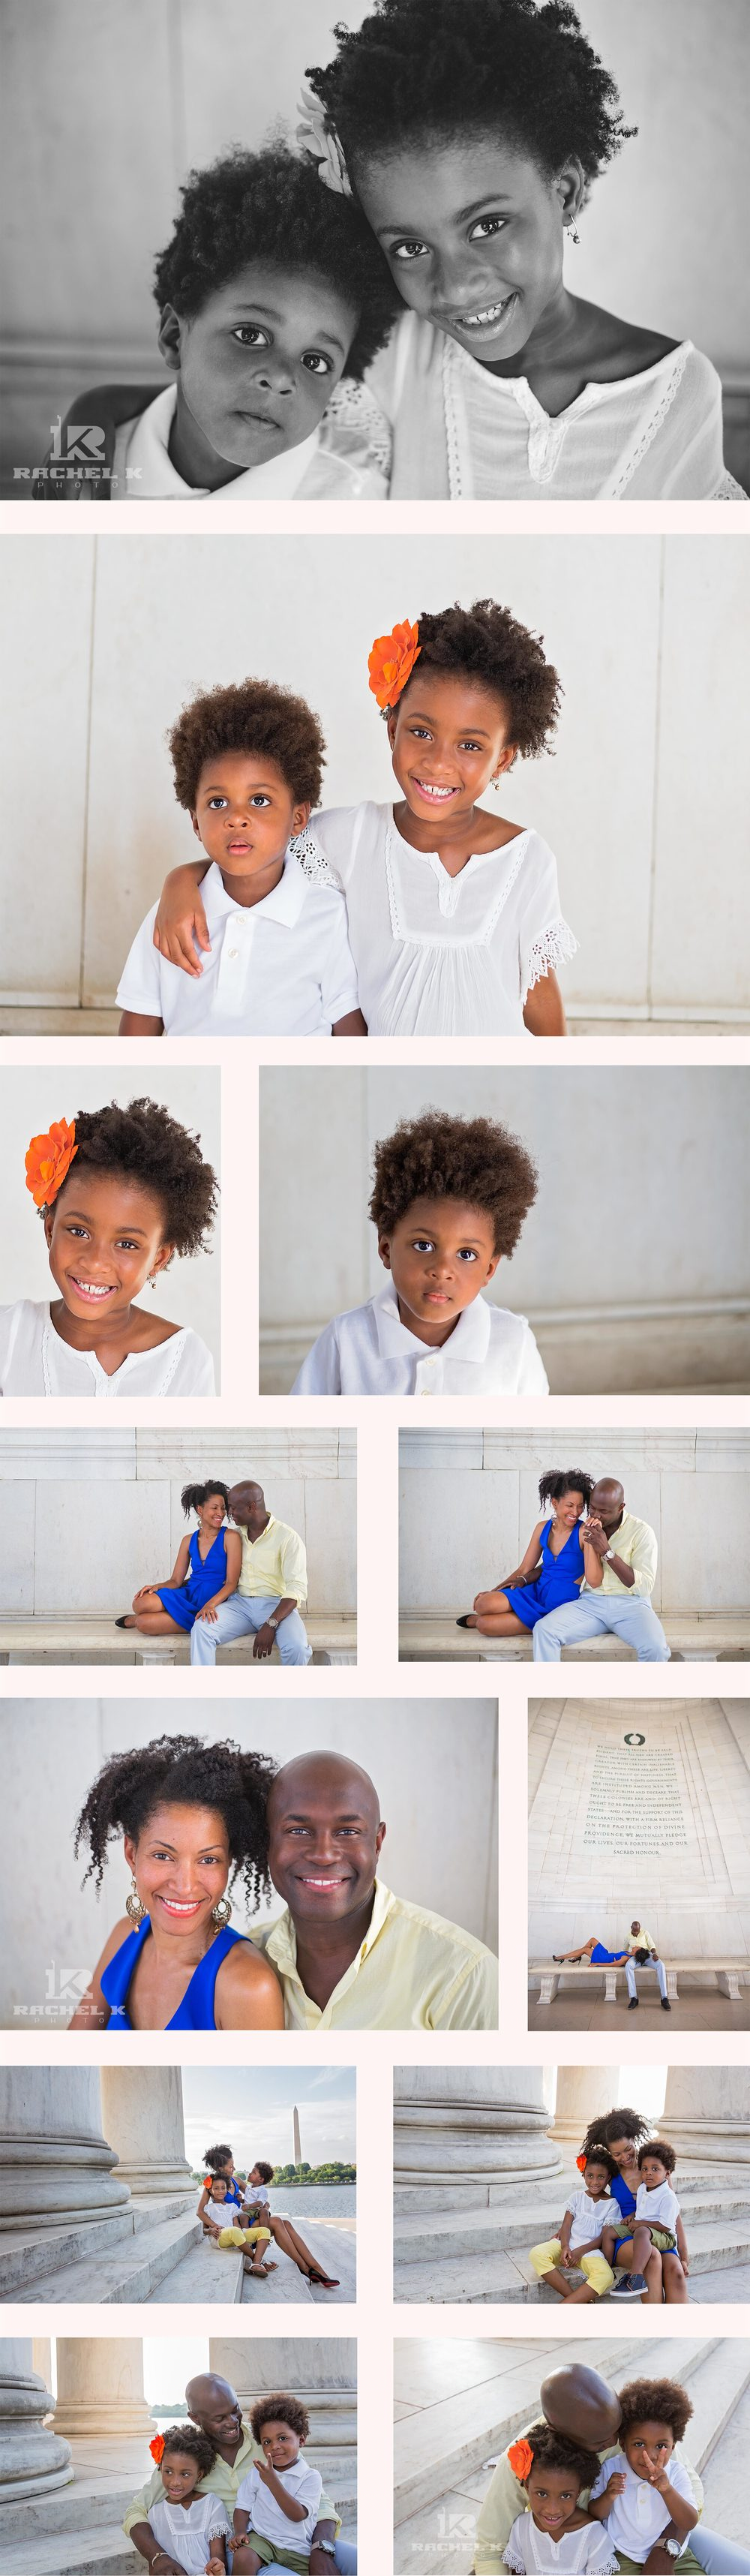 Jefferson memorial family session by Rachel K Photo